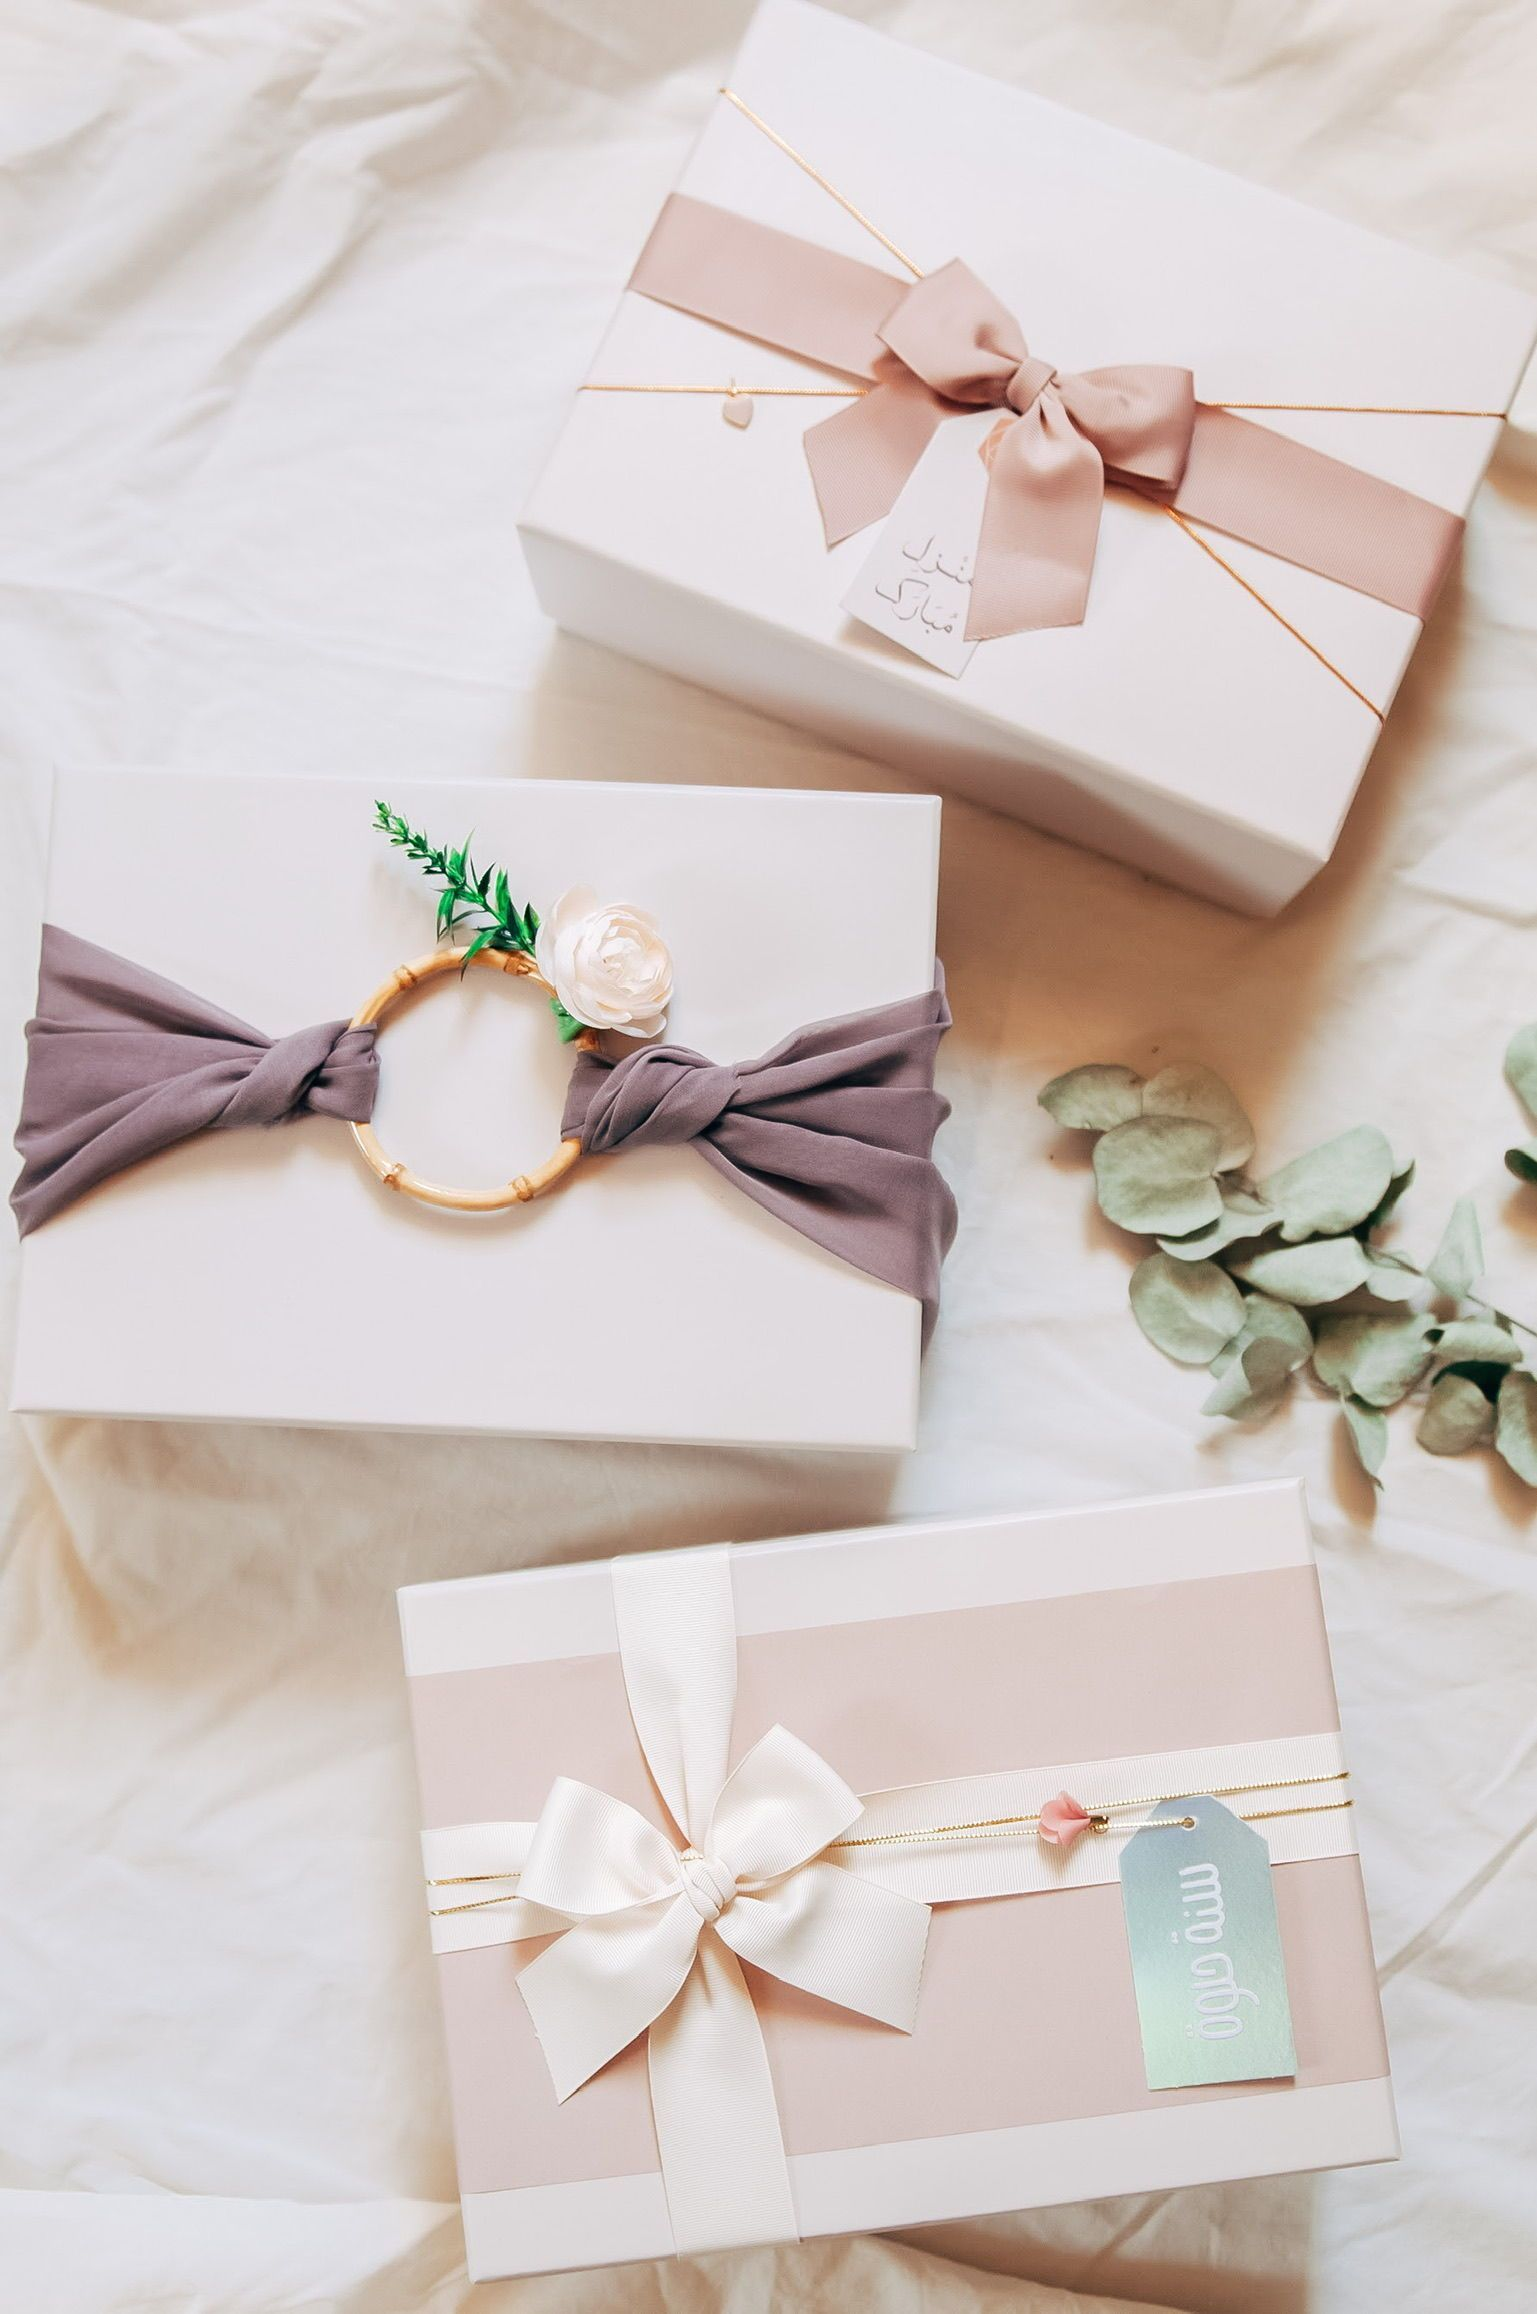 Gift Box Photography Gifts Elegant Gift Wrapping Wedding Gift Wrapping